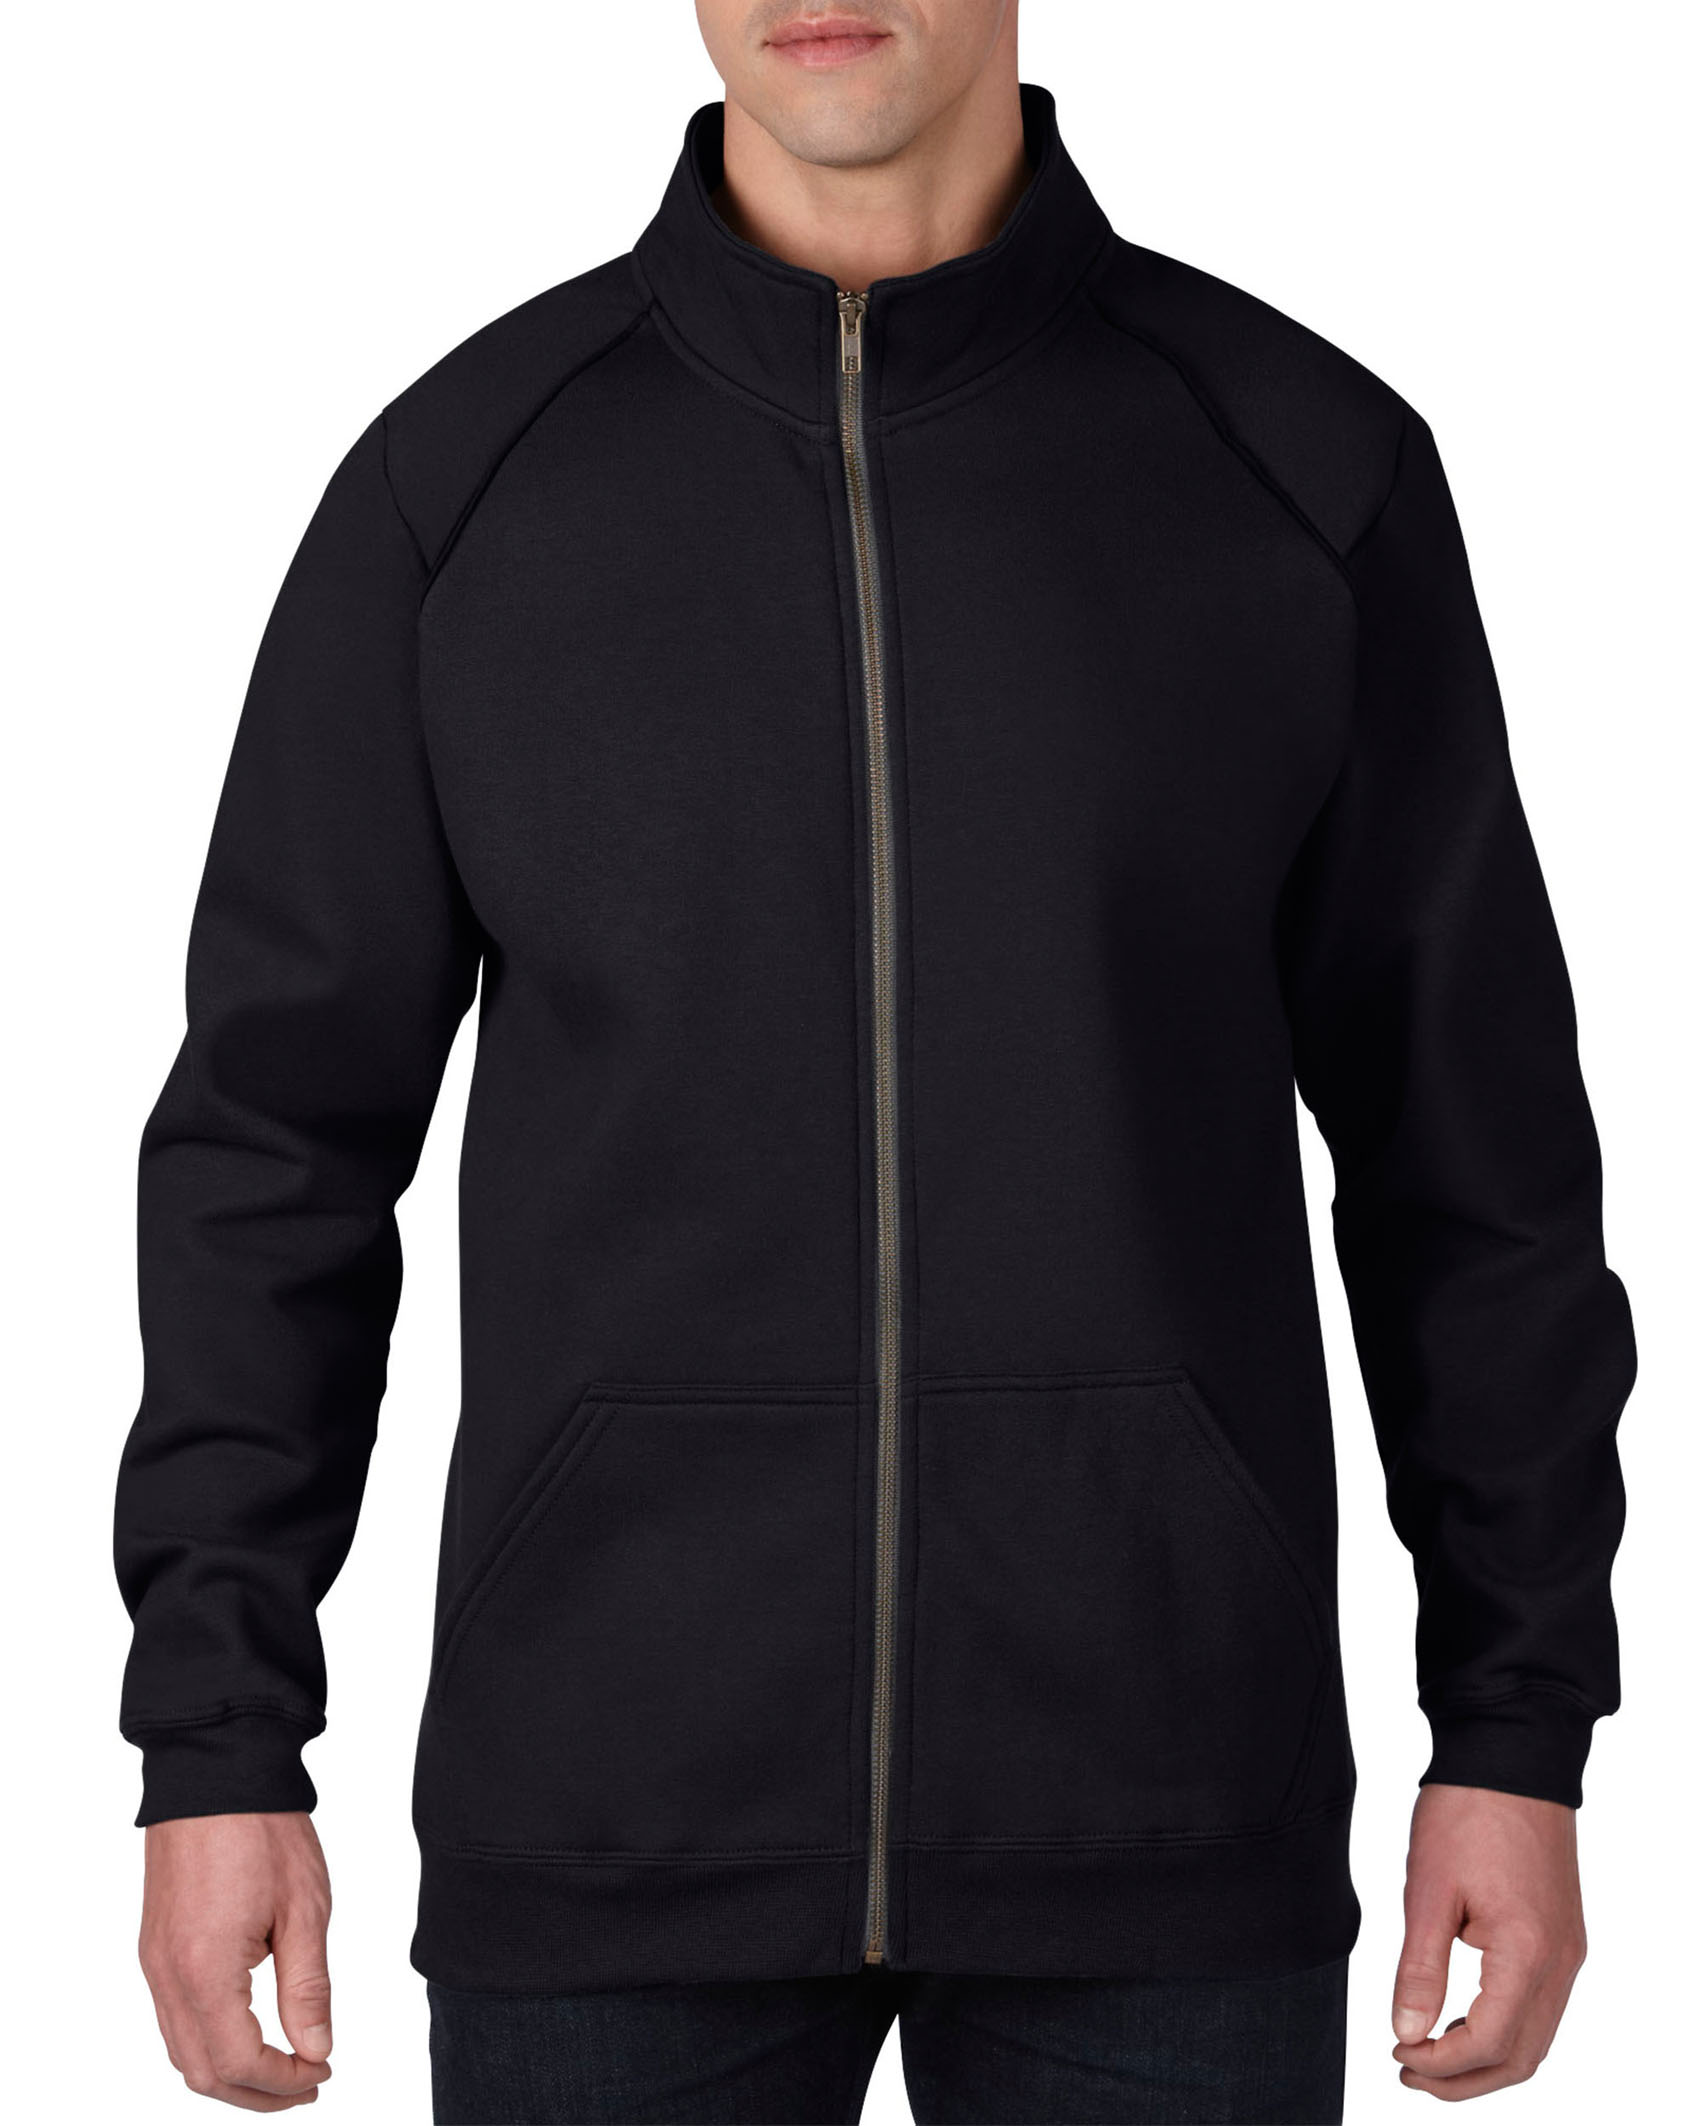 Gildan Sweater Full Zip Premium Cotton